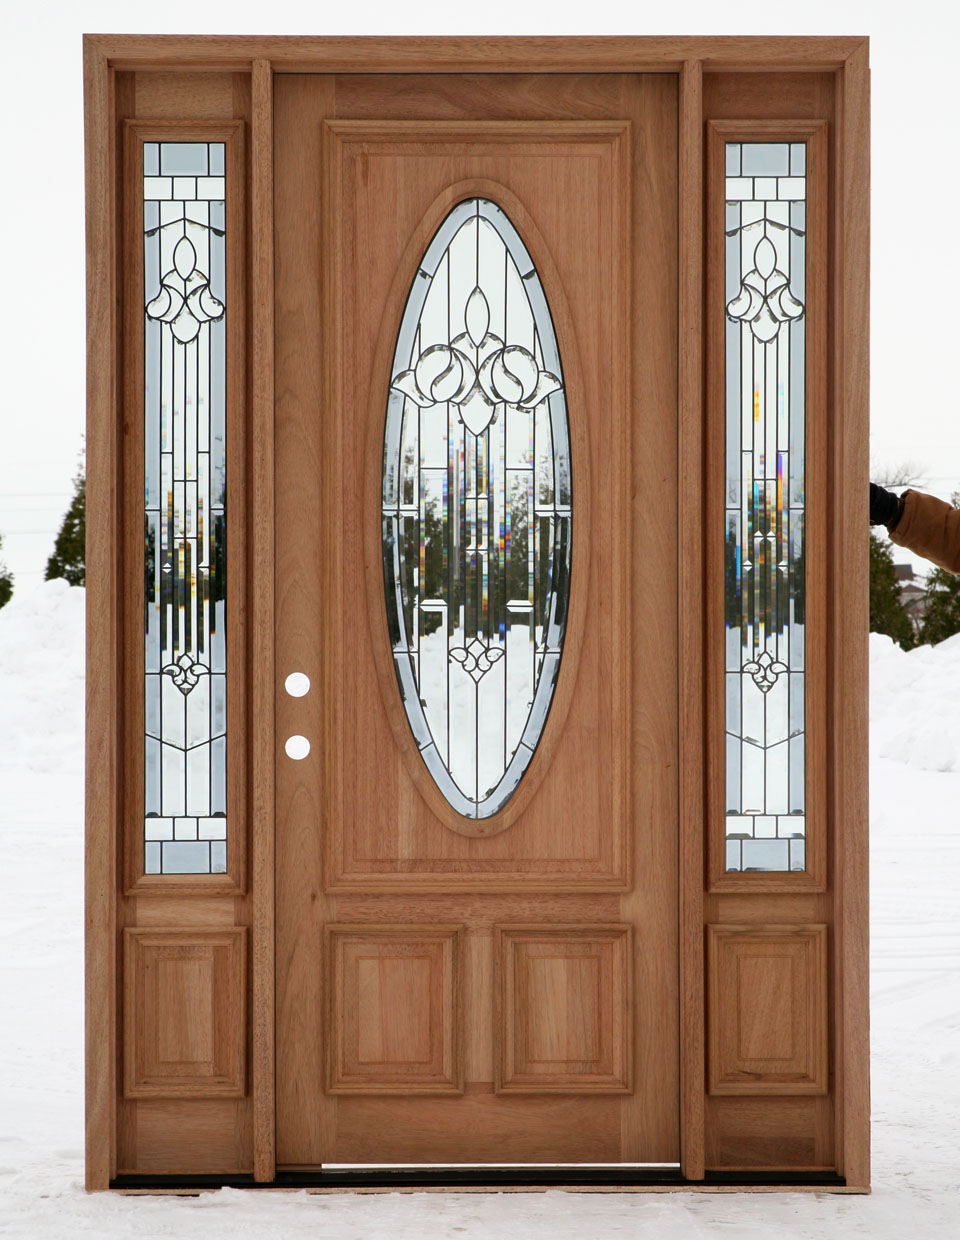 Incredible Exterior Entry Doors with Glass 960 x 1240 · 246 kB · jpeg